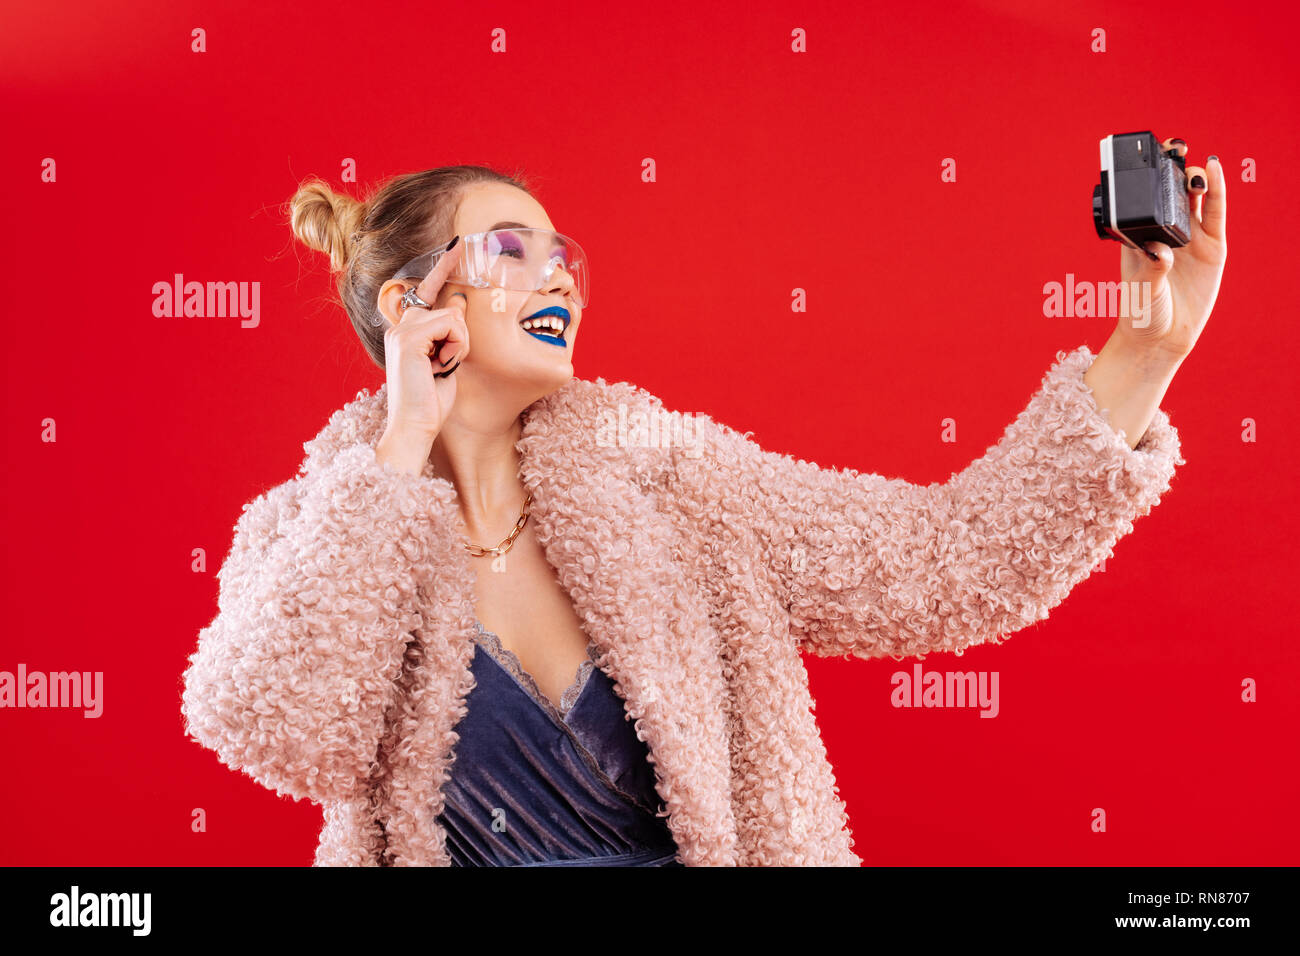 Woman wearing pink fluffy coat smiling while making selfie - Stock Image